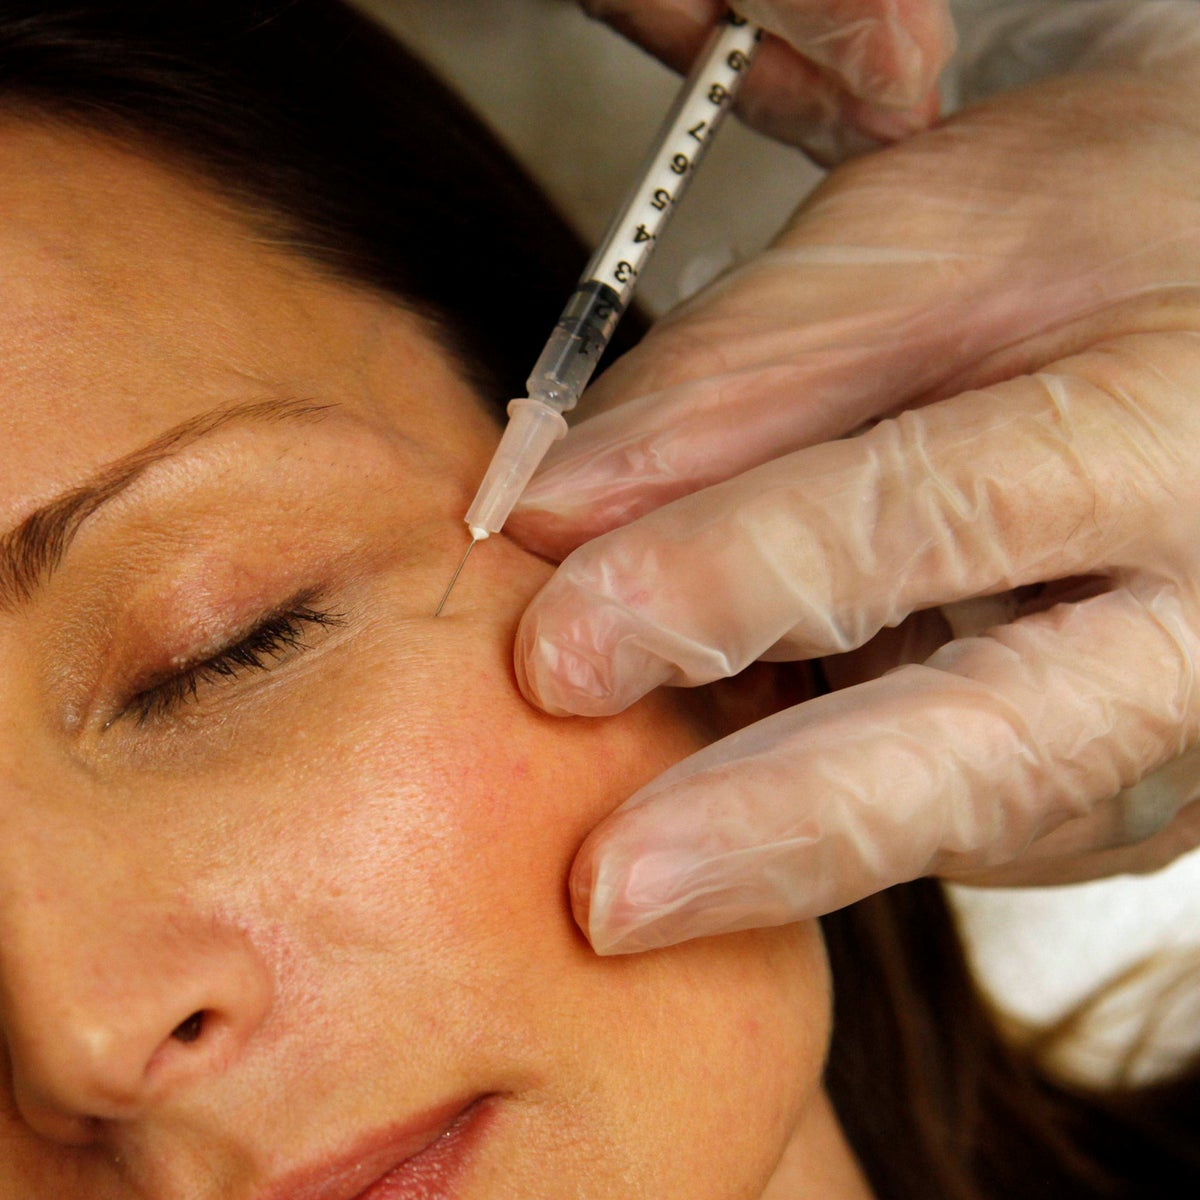 A woman has Botox injected to her eye area. There has been no delay or slowdown in the aging process in the study.